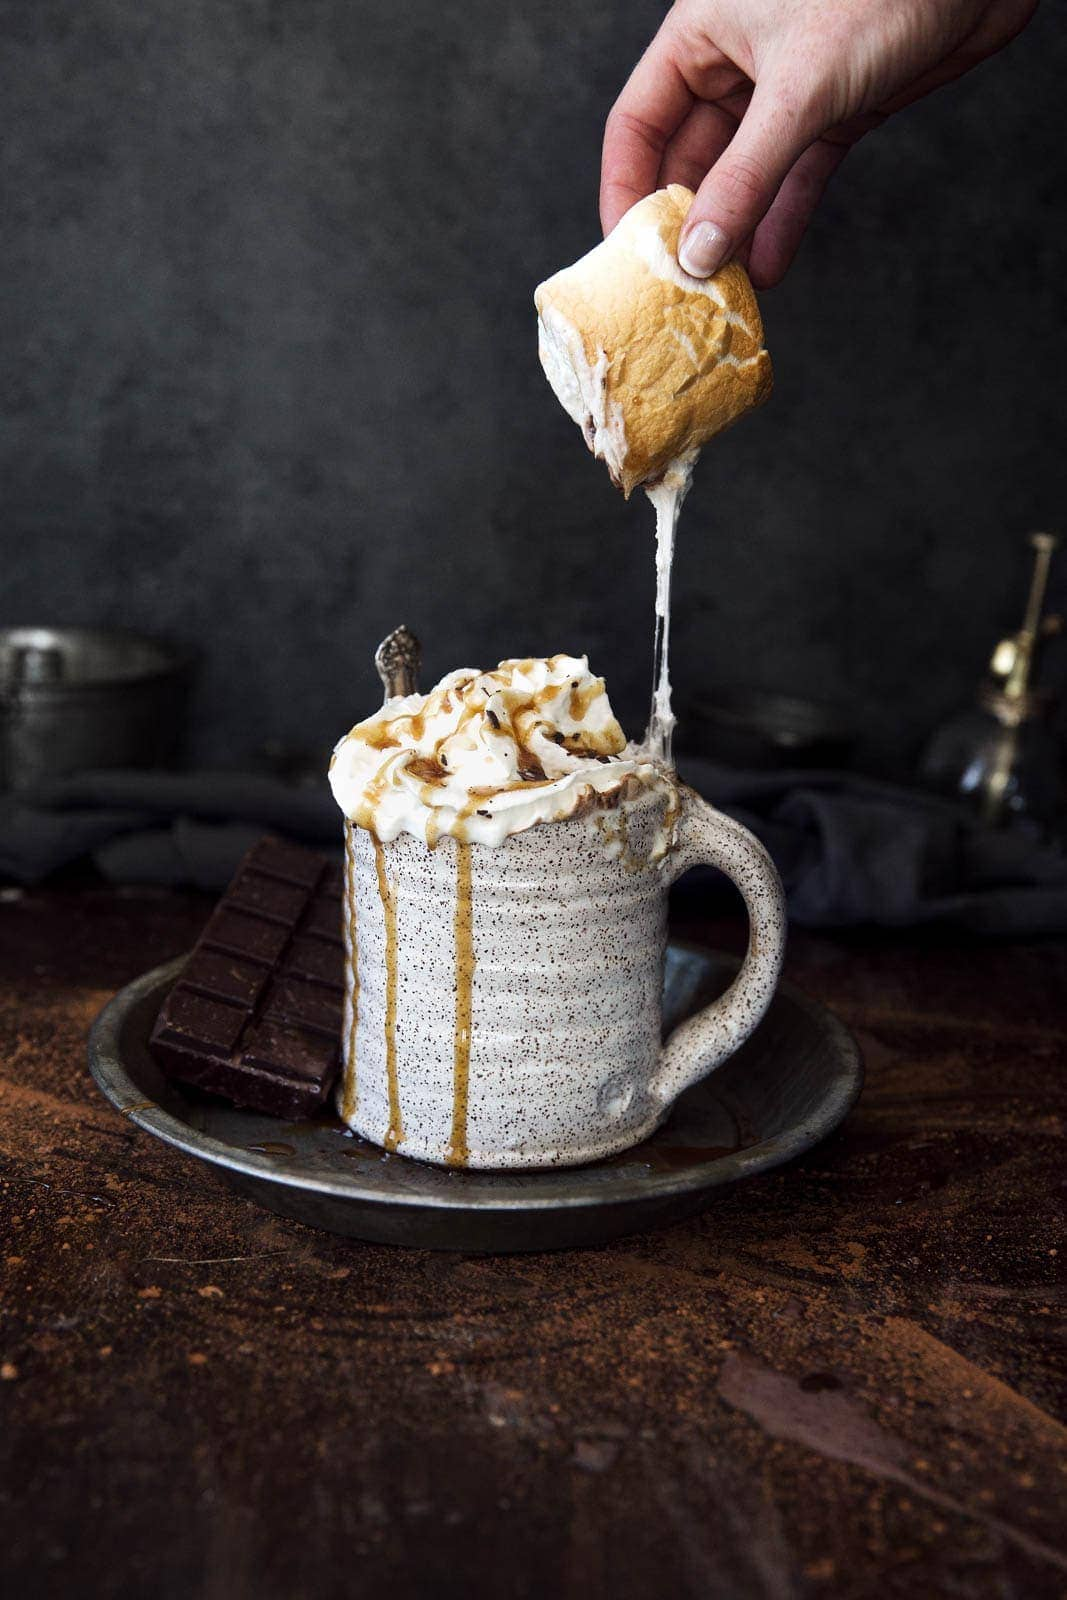 Who says mornings can't be delicious and better for you? This skinny caramel mocha is only 160 calories, including whipped cream!